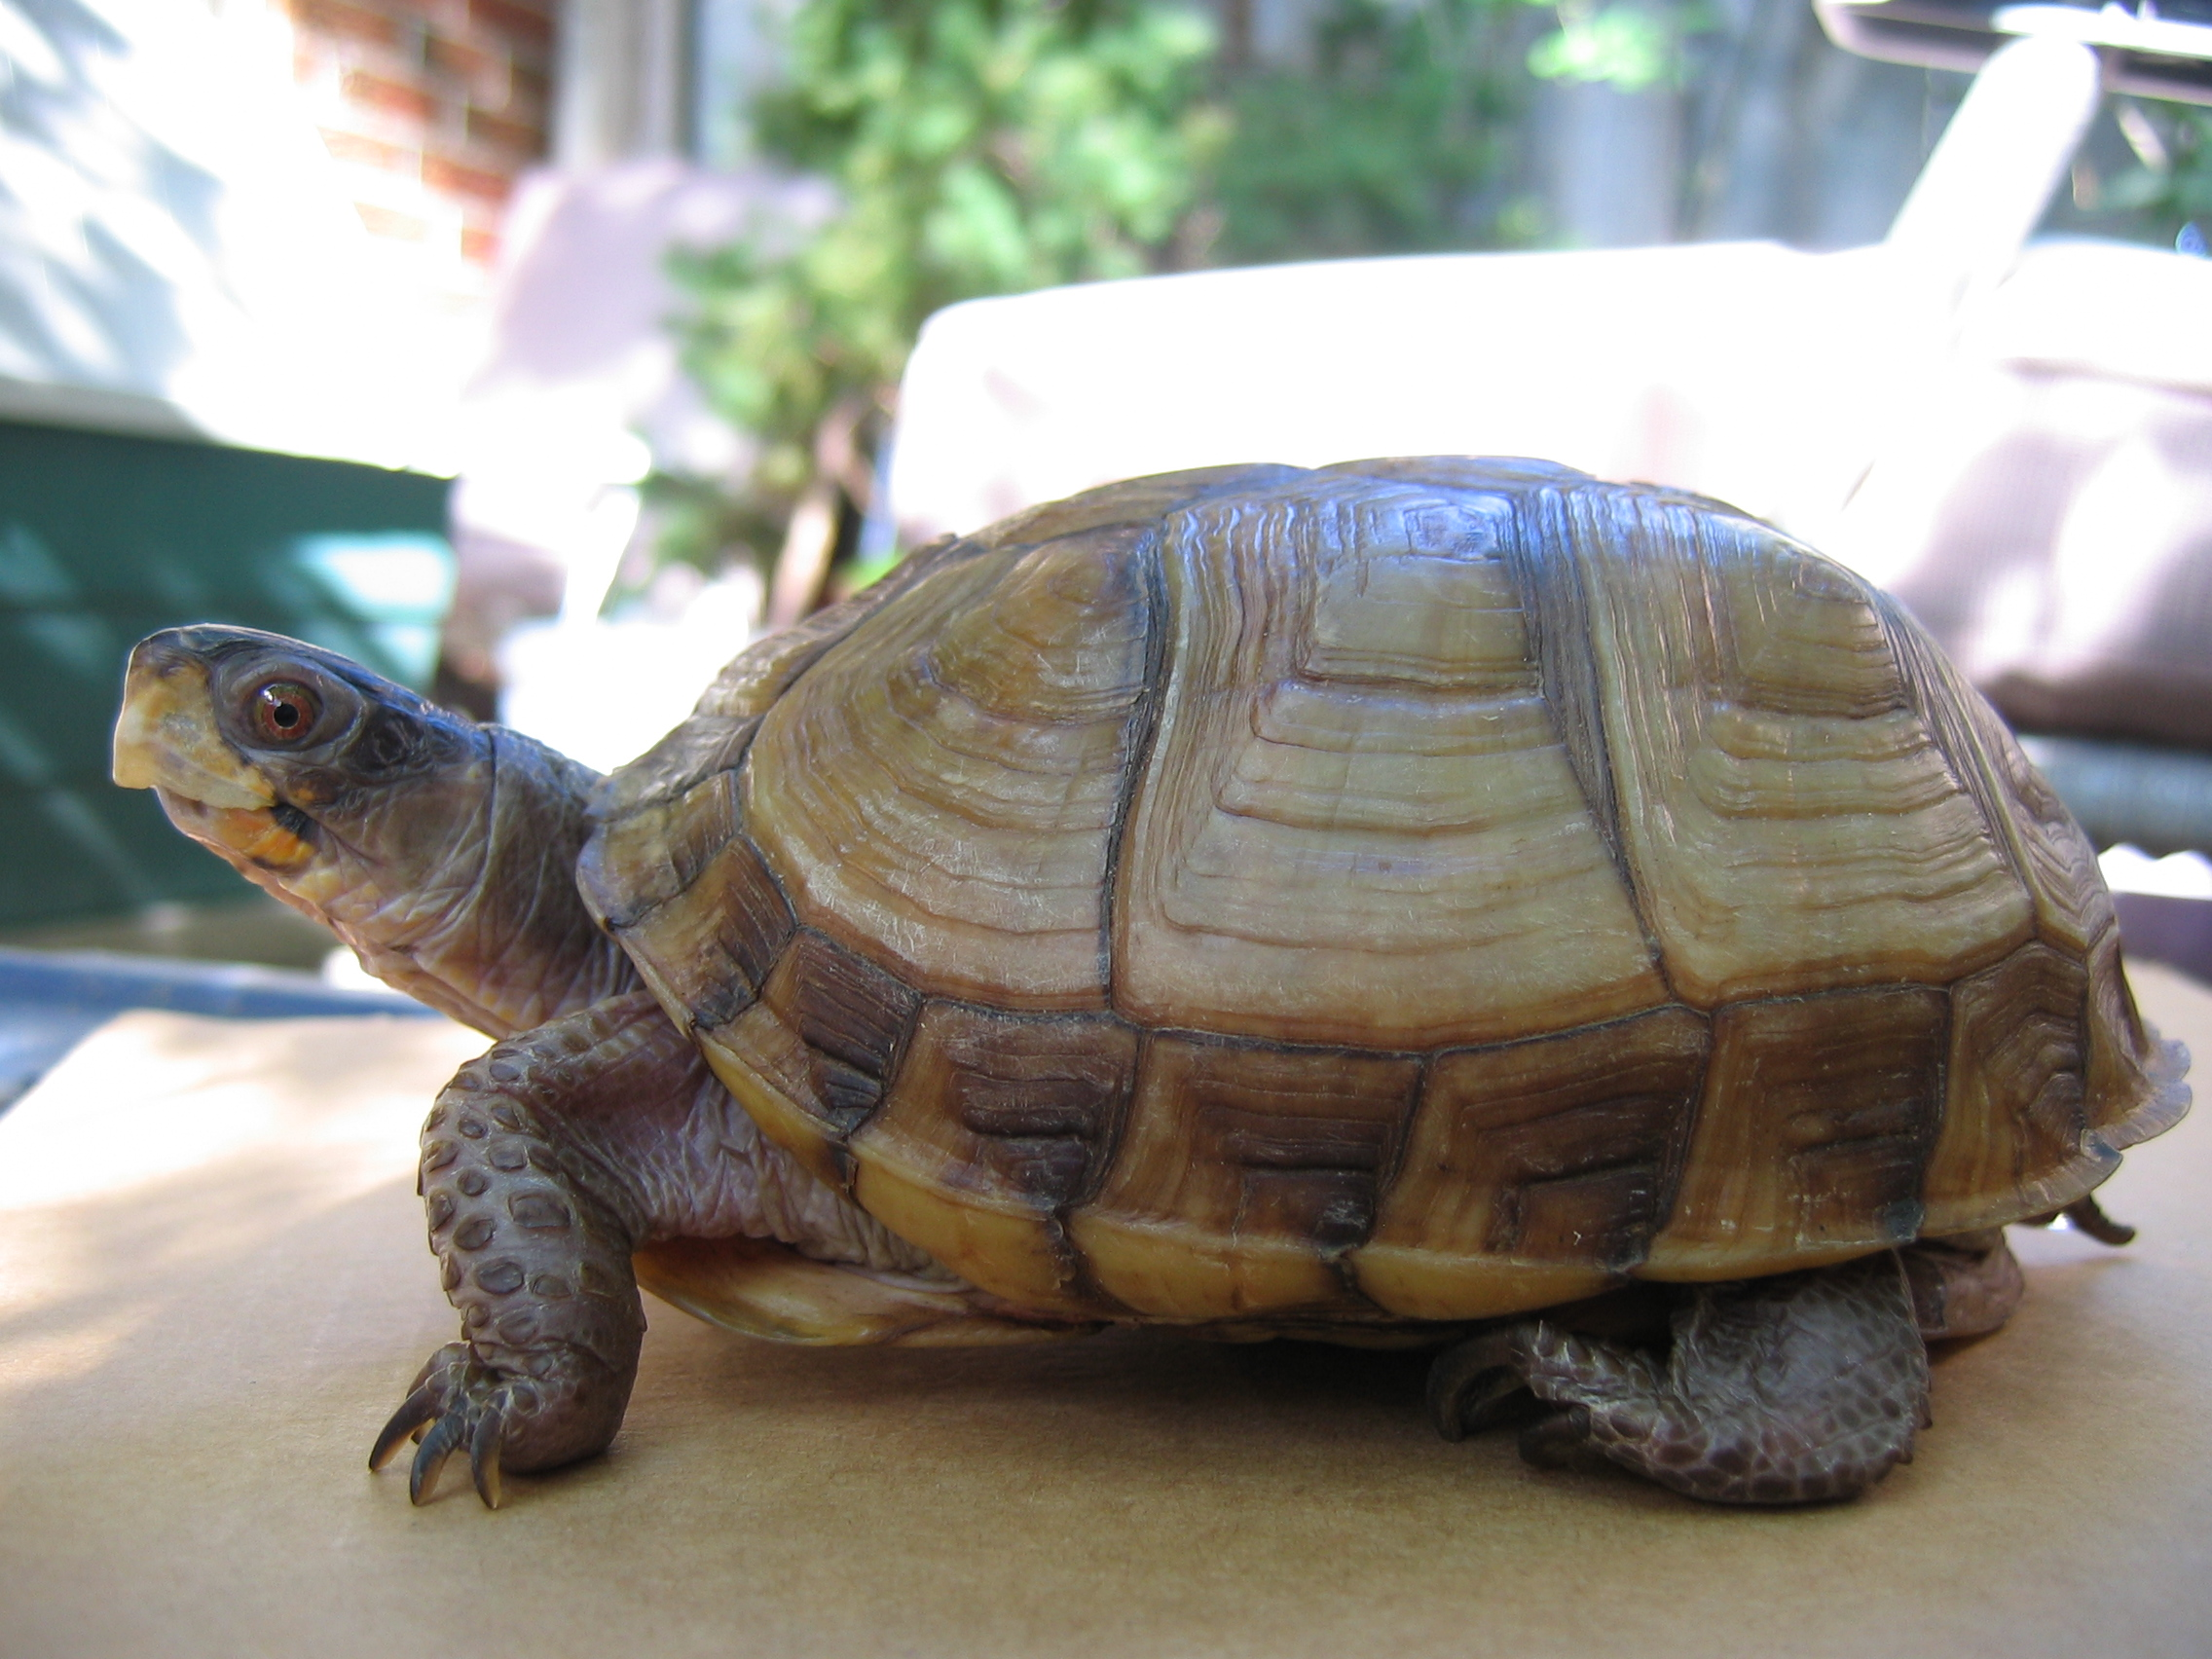 Pet Land Turtle Images & Pictures - Becuo